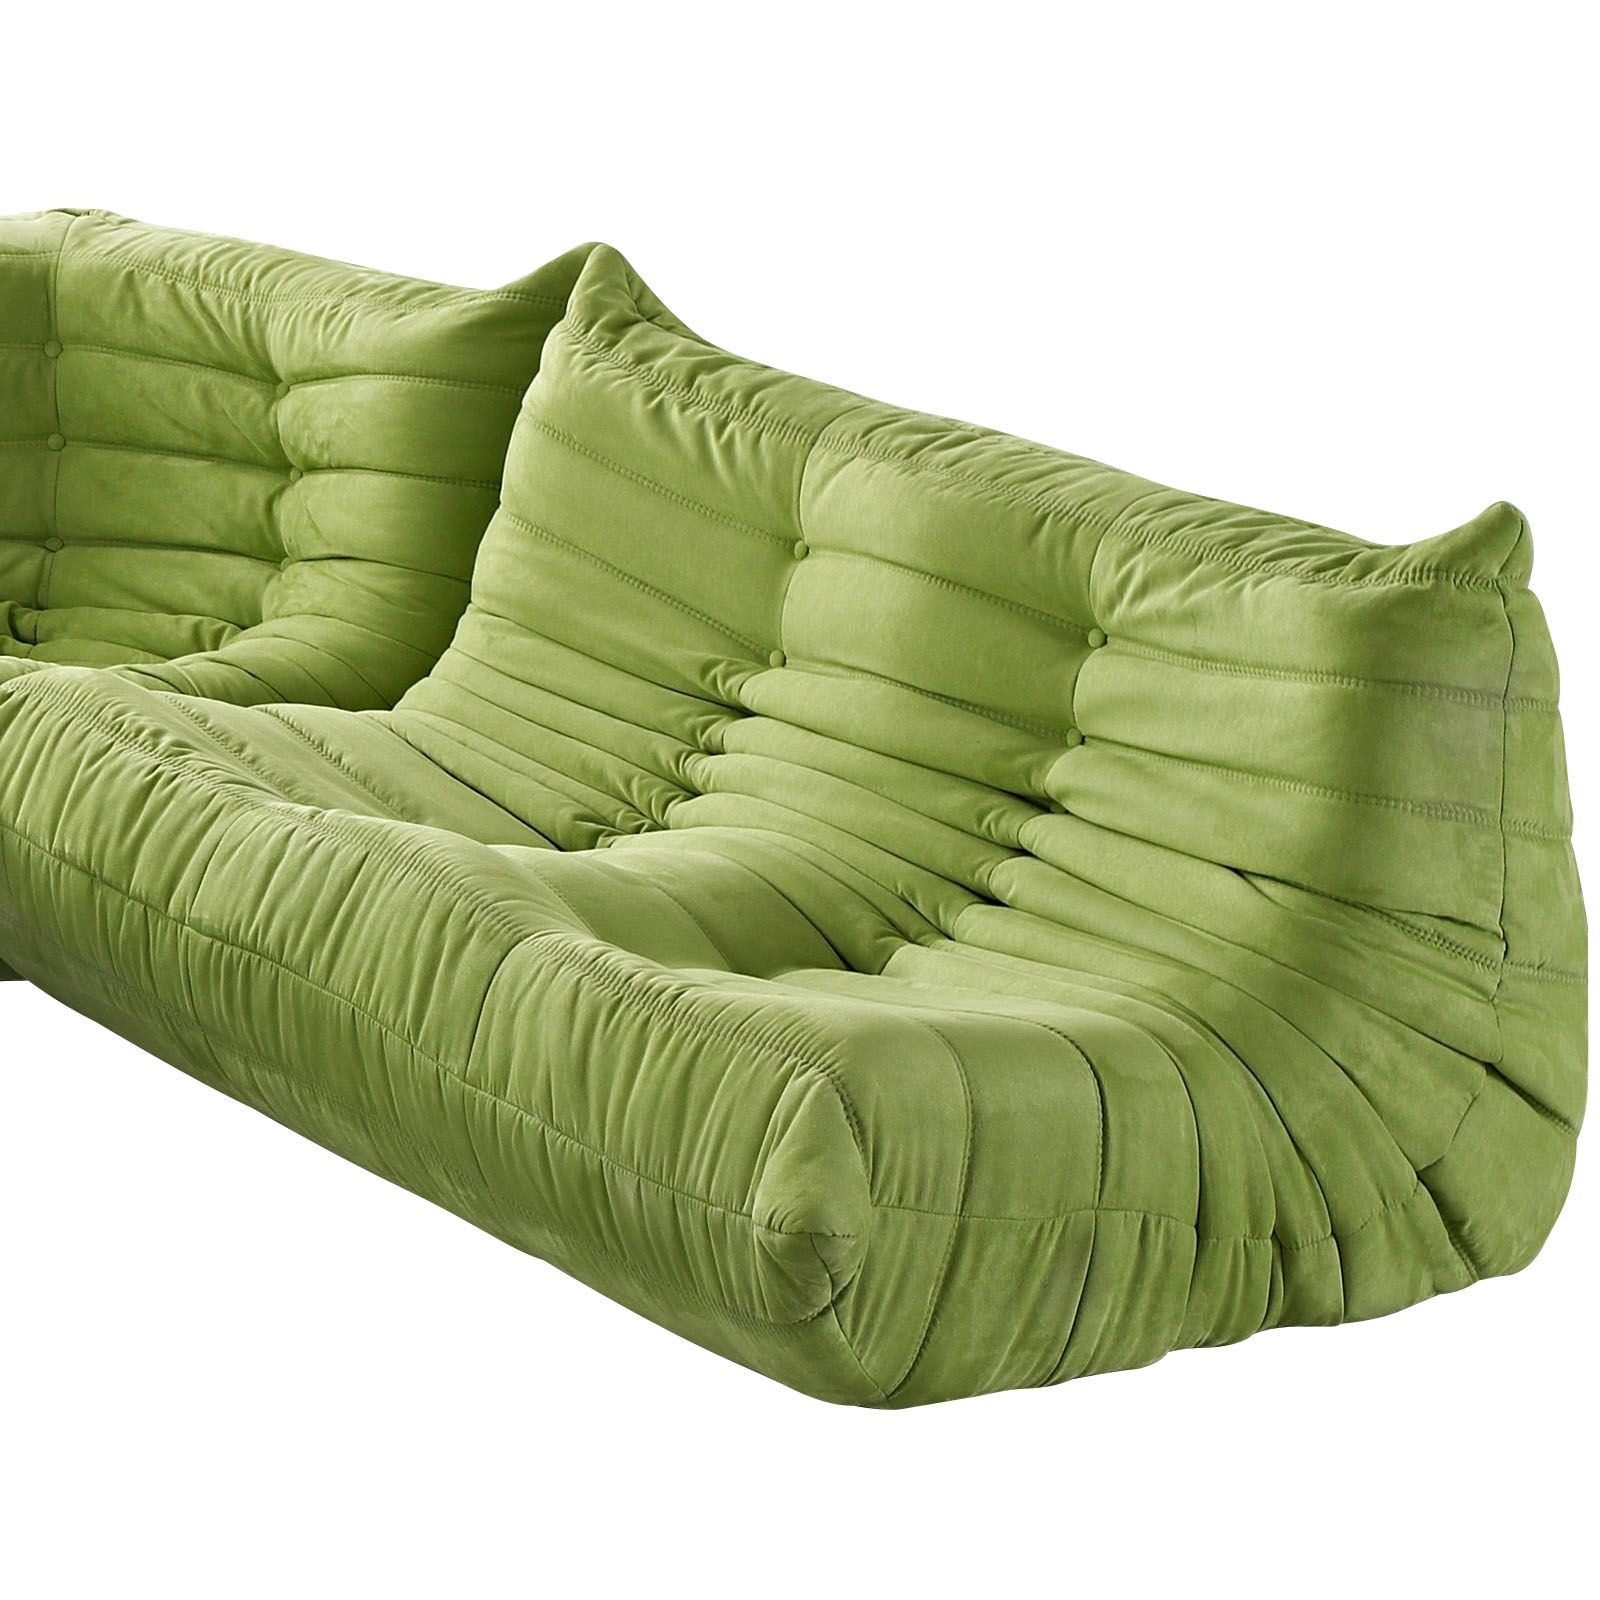 Togo Sofa For Kids Bedroom (why Is It So Expensive?!) Awesome Ideas